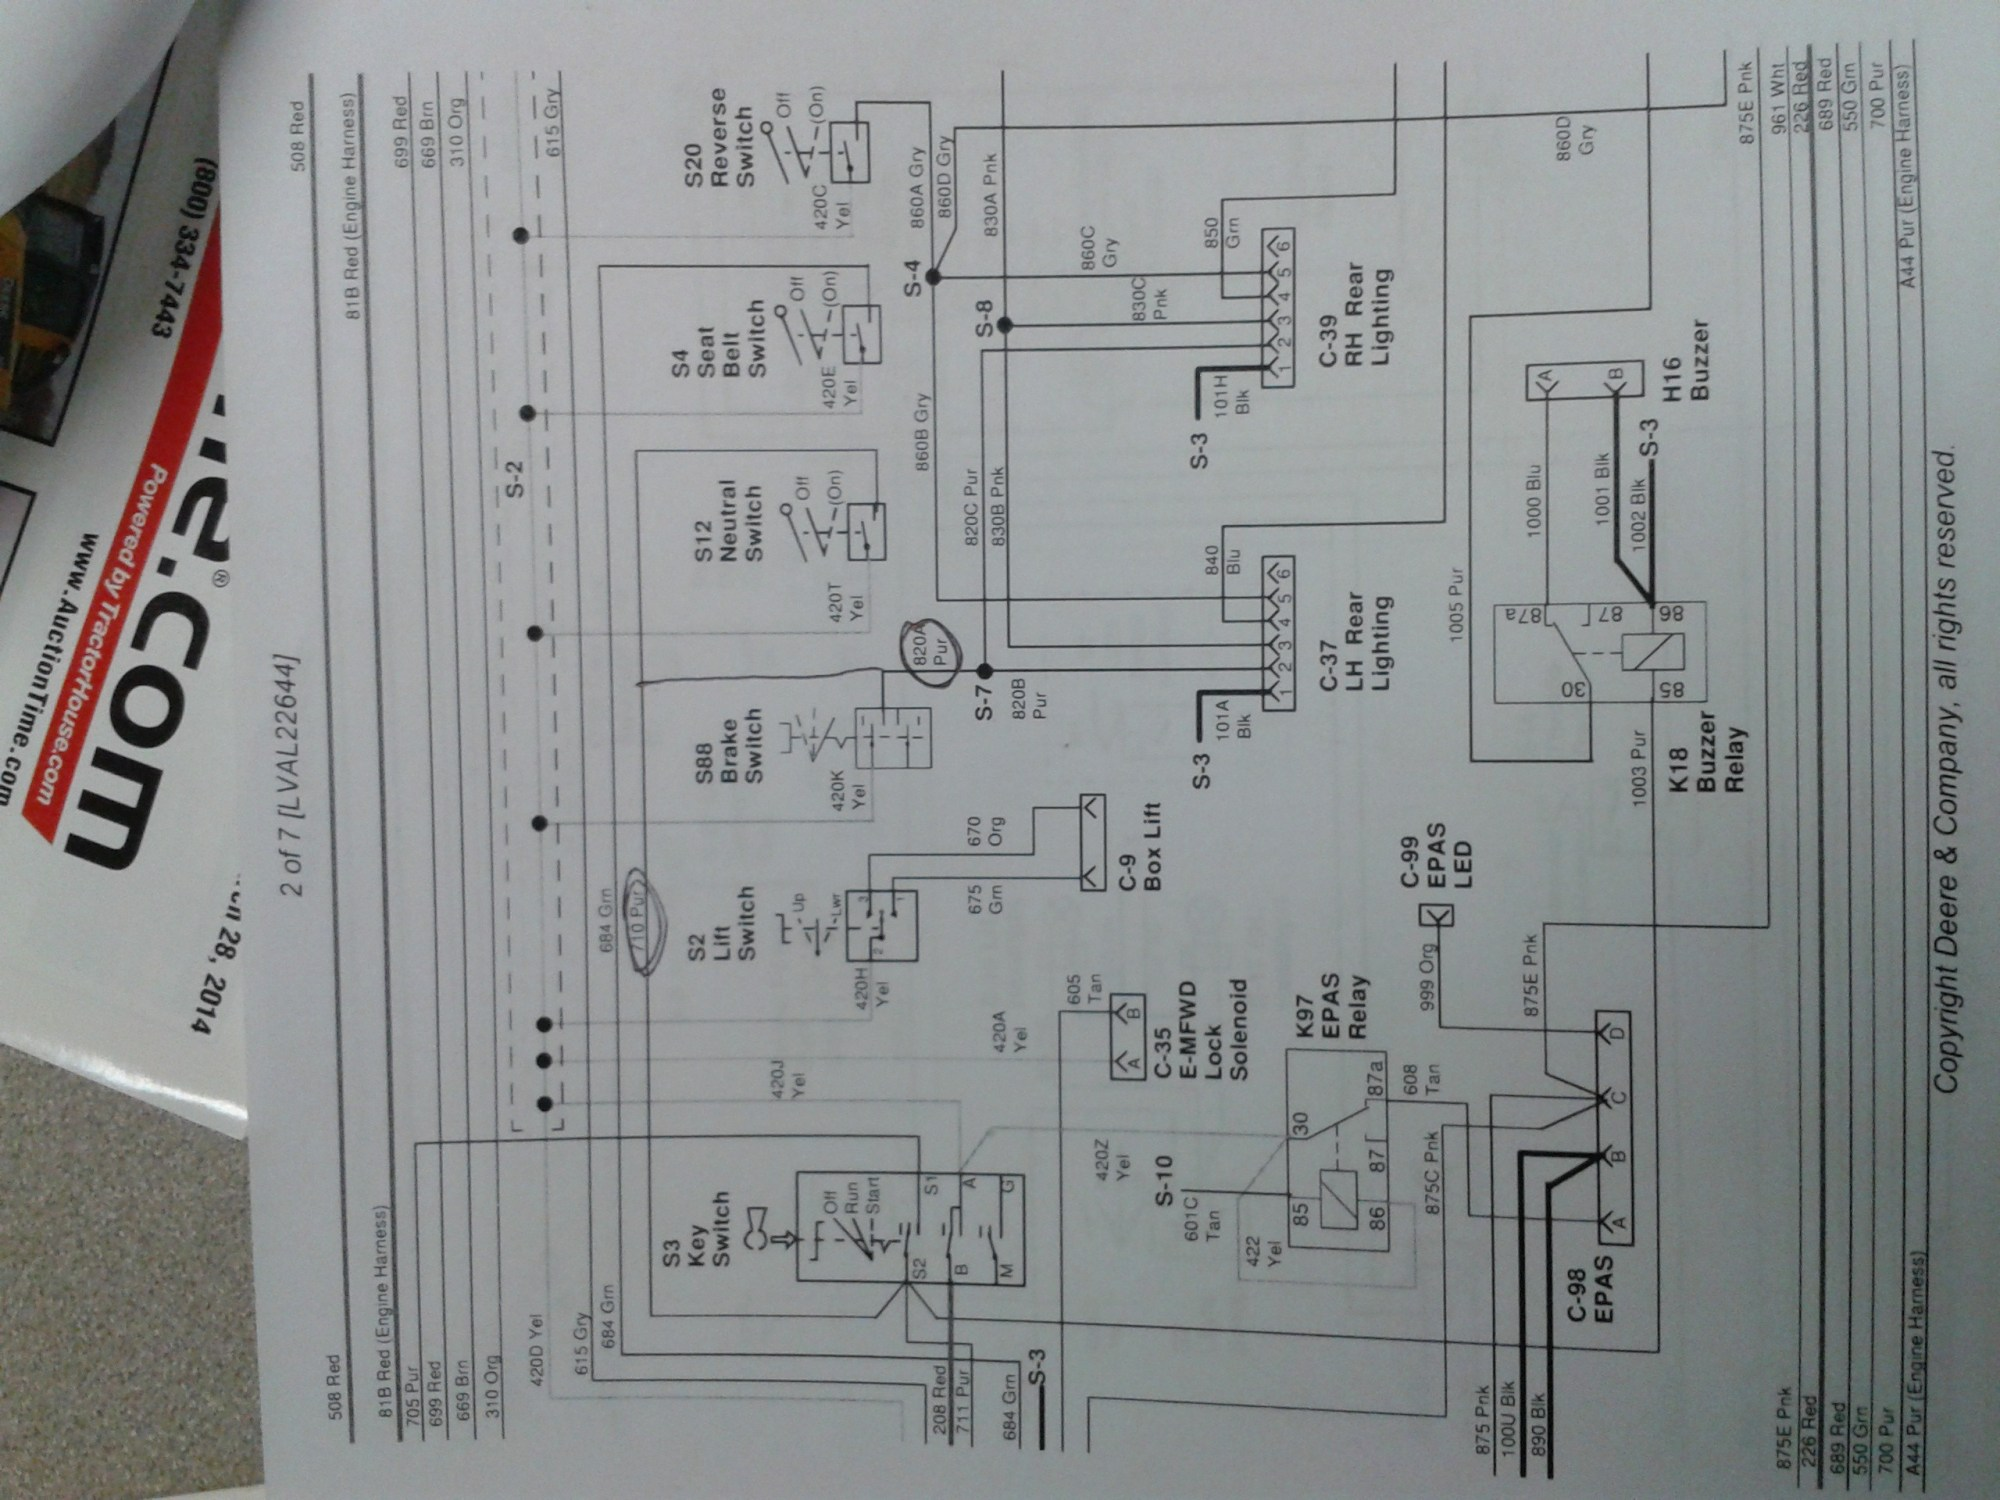 hight resolution of wrg 2228 john deere a wiring diagram for 1100john deere a wiring diagram for 1100